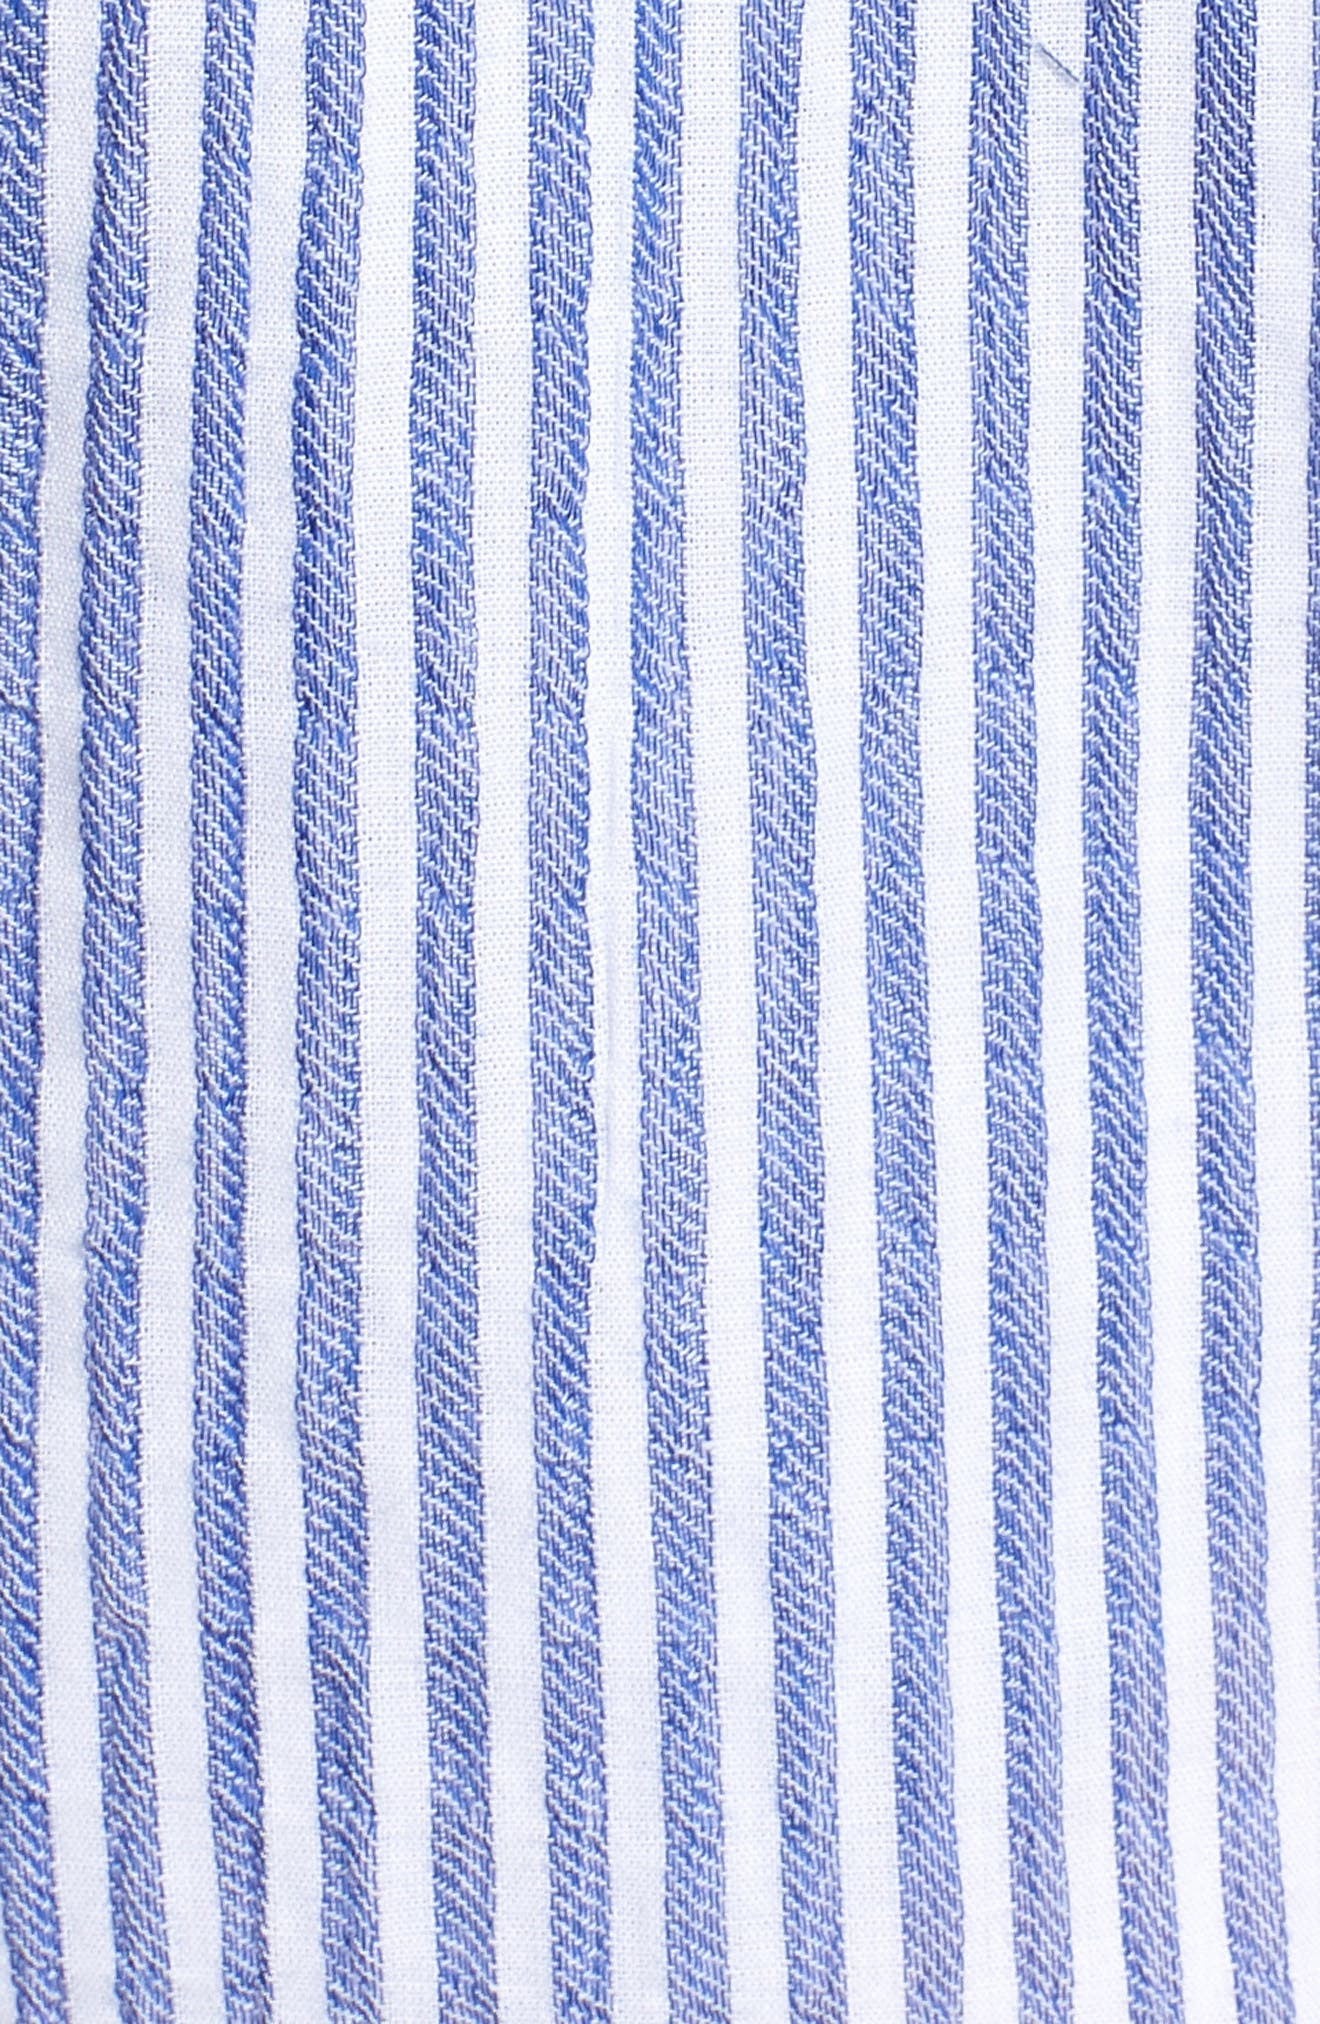 Bishop + Young Stripe Shorts,                             Alternate thumbnail 5, color,                             Blue White Stripe